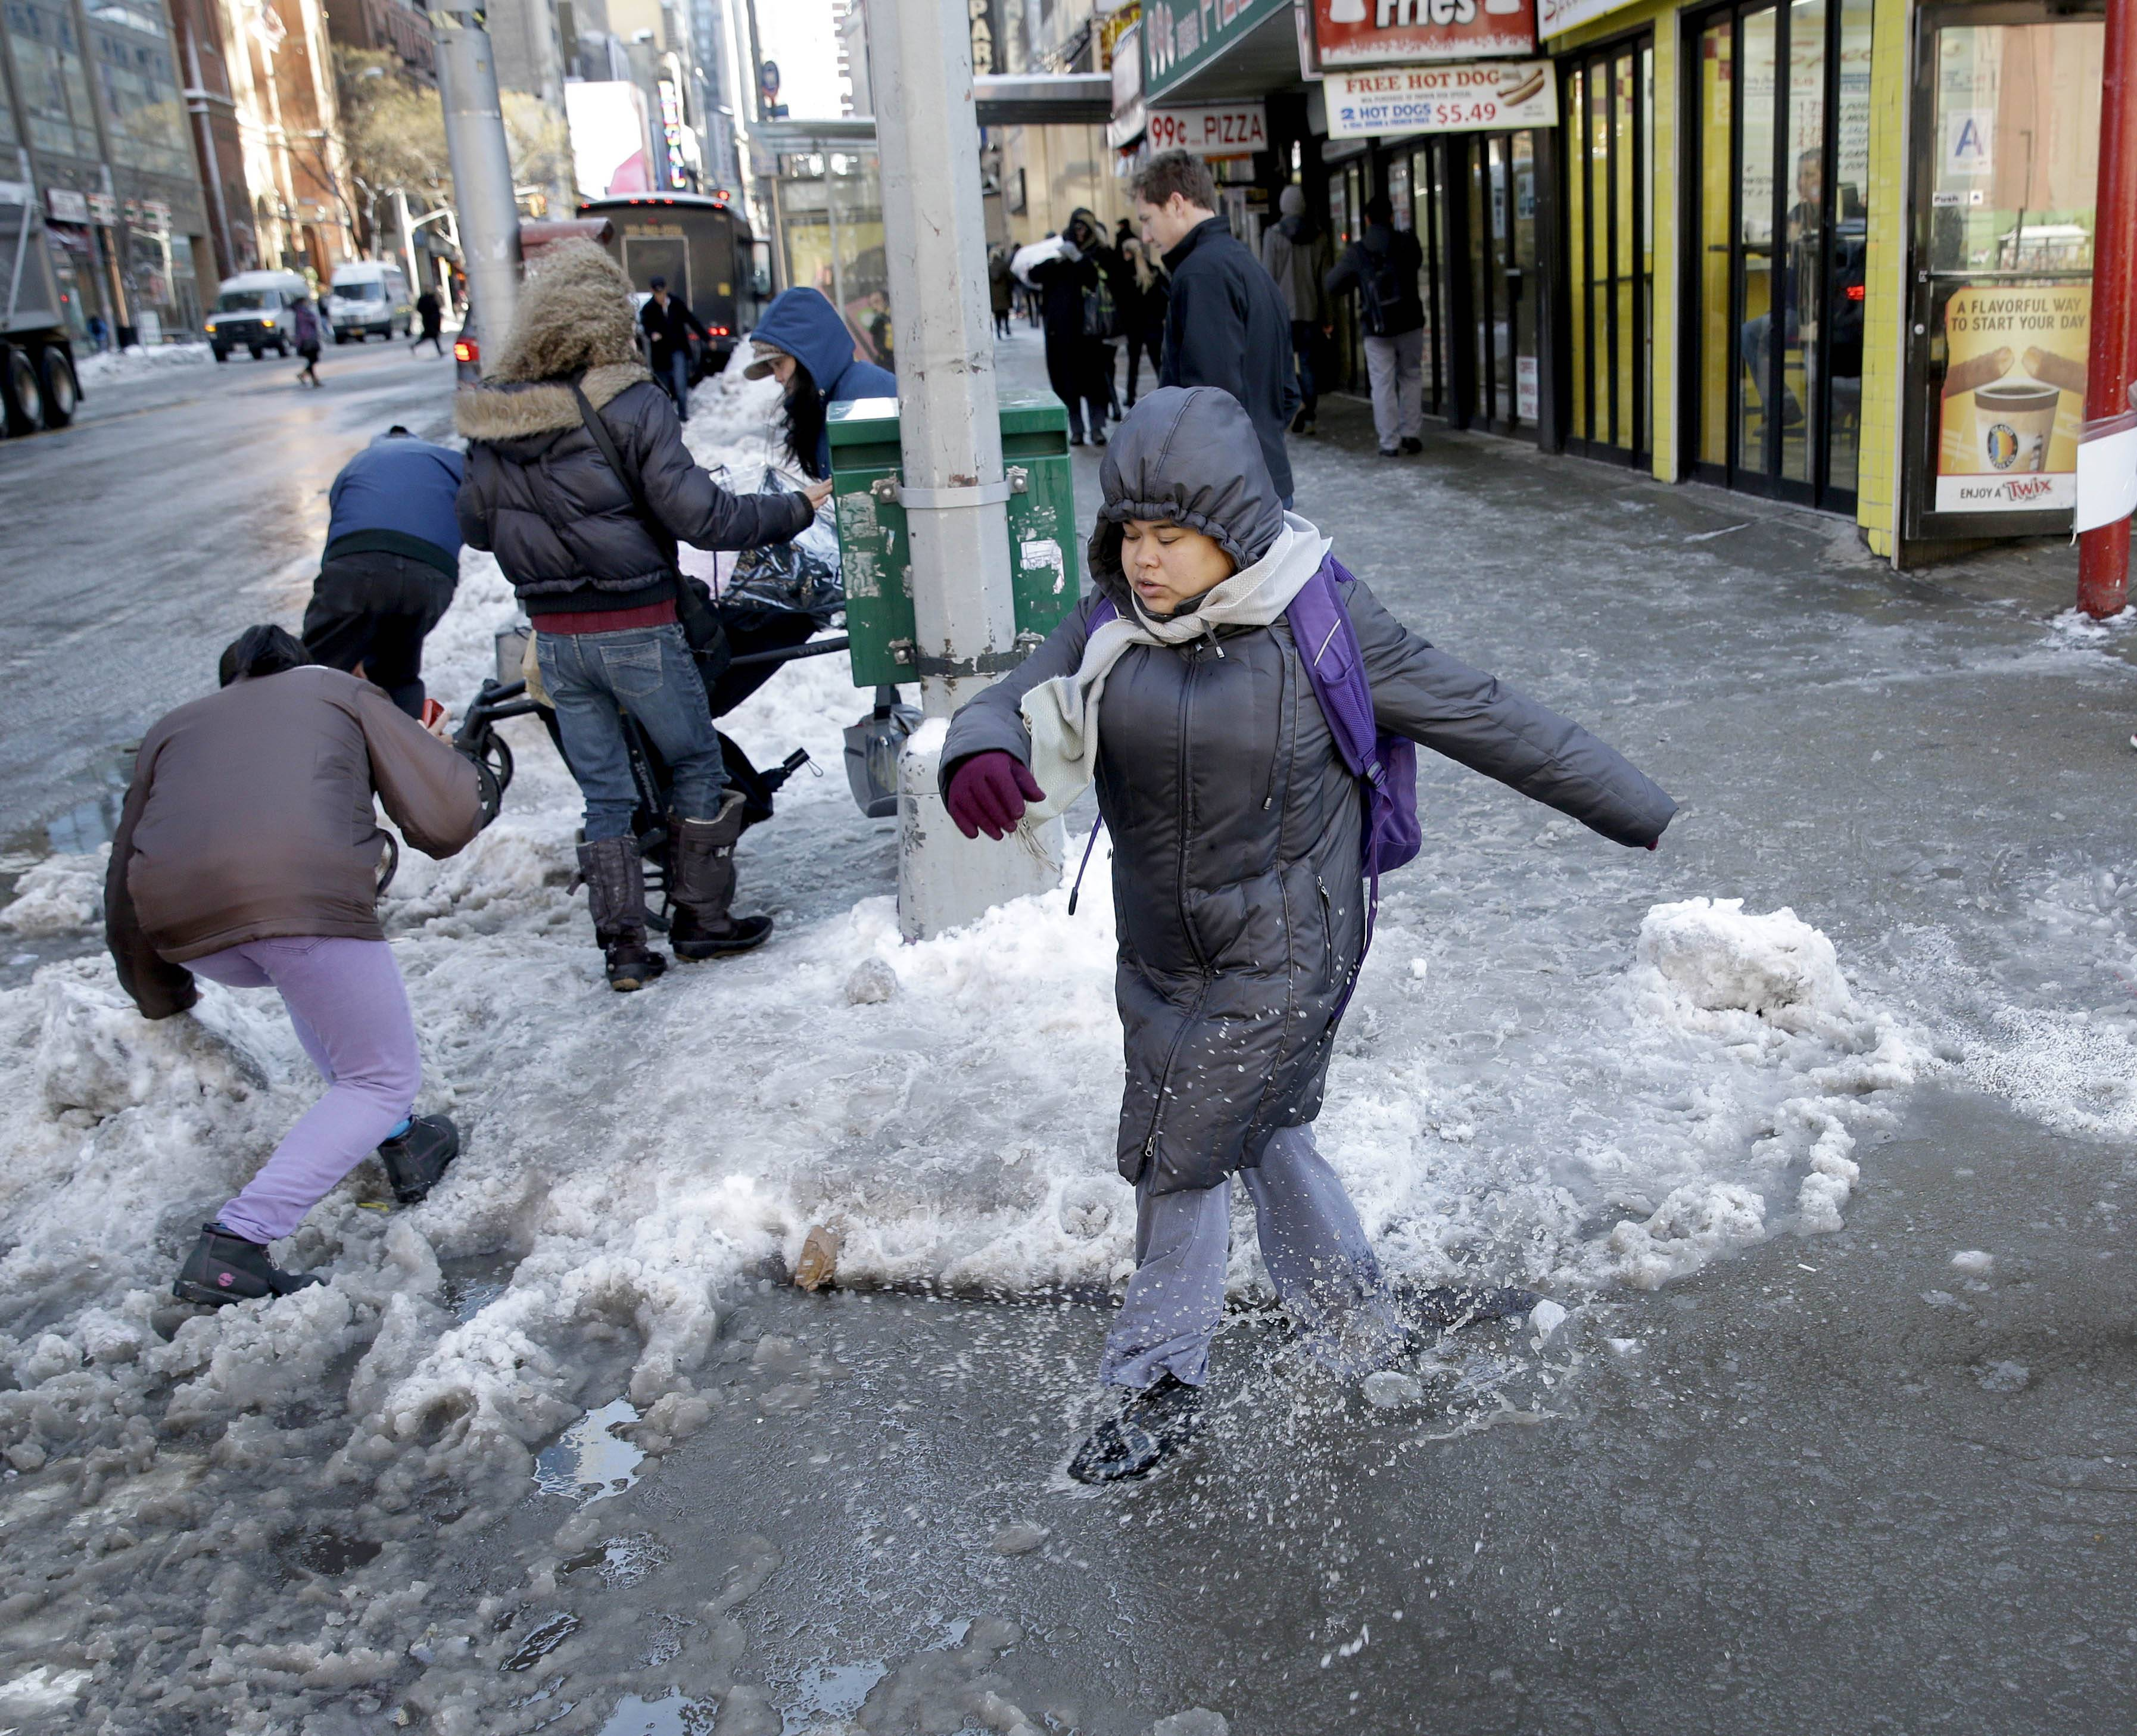 Pedestrians struggle to navigate a slushy intersection in New York, Friday, Feb. 14, 2014. Commuters faced slick roads on Friday after yet another winter storm brought snow and ice to the East Coast, leaving at least 24 people dead.